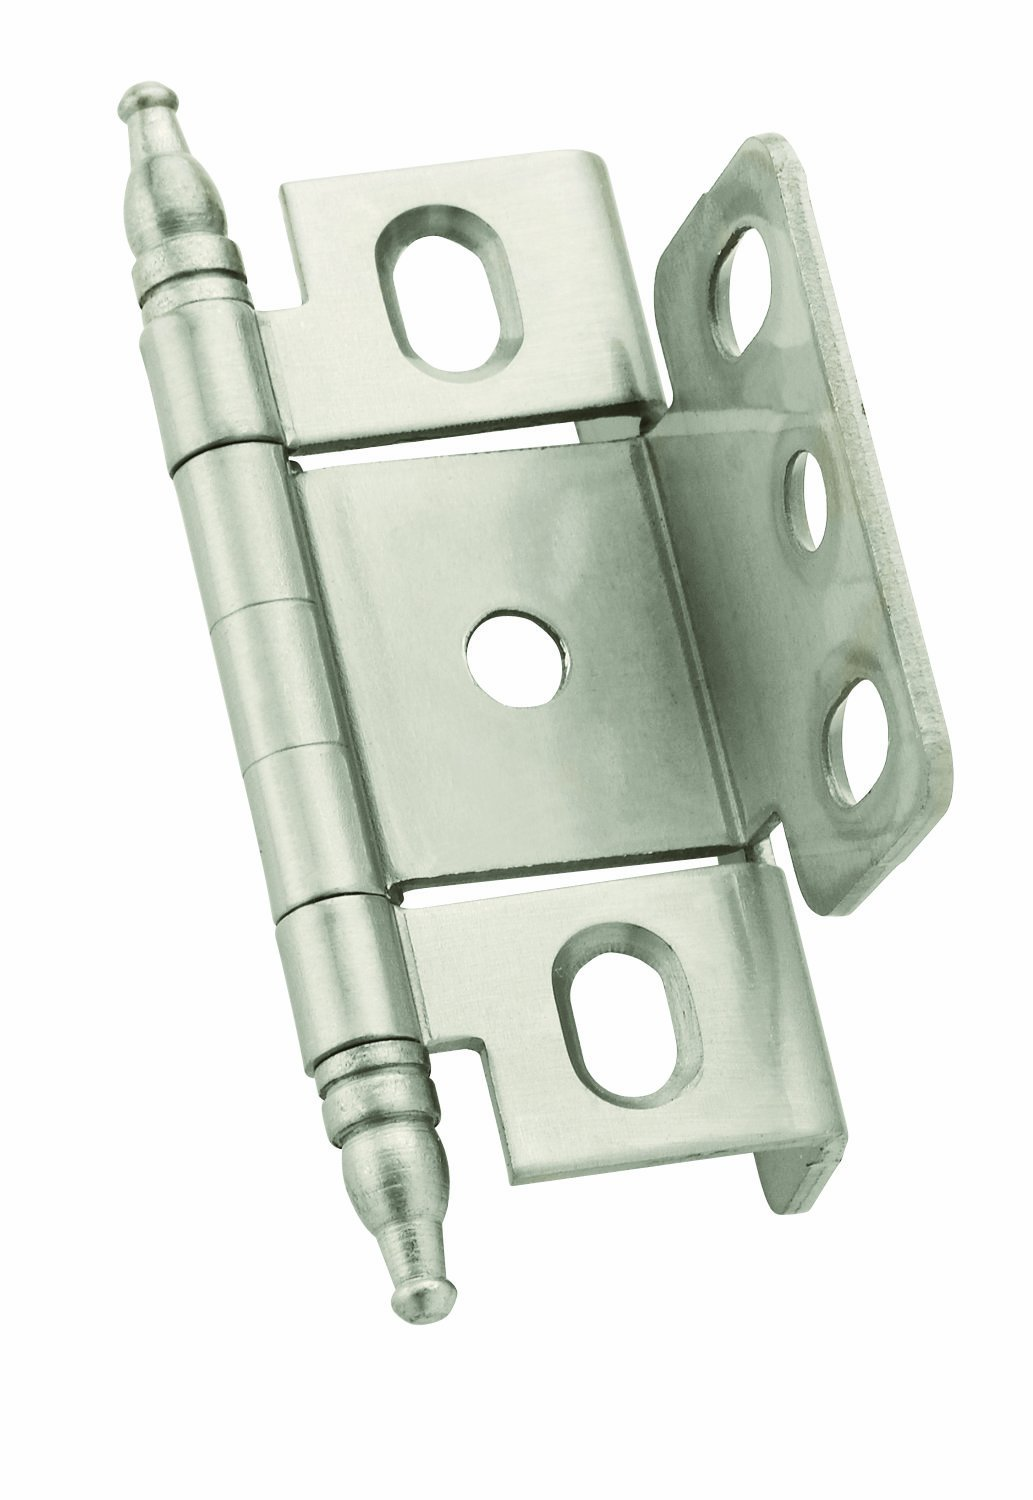 Superieur Amerock PK3175TMG10 Full Inset, Full Wrap, Minaret Tip Hinge With  3/4in(19mm) Door Thick.   Satin Nickel   Cabinet And Furniture Hinges    Amazon.com